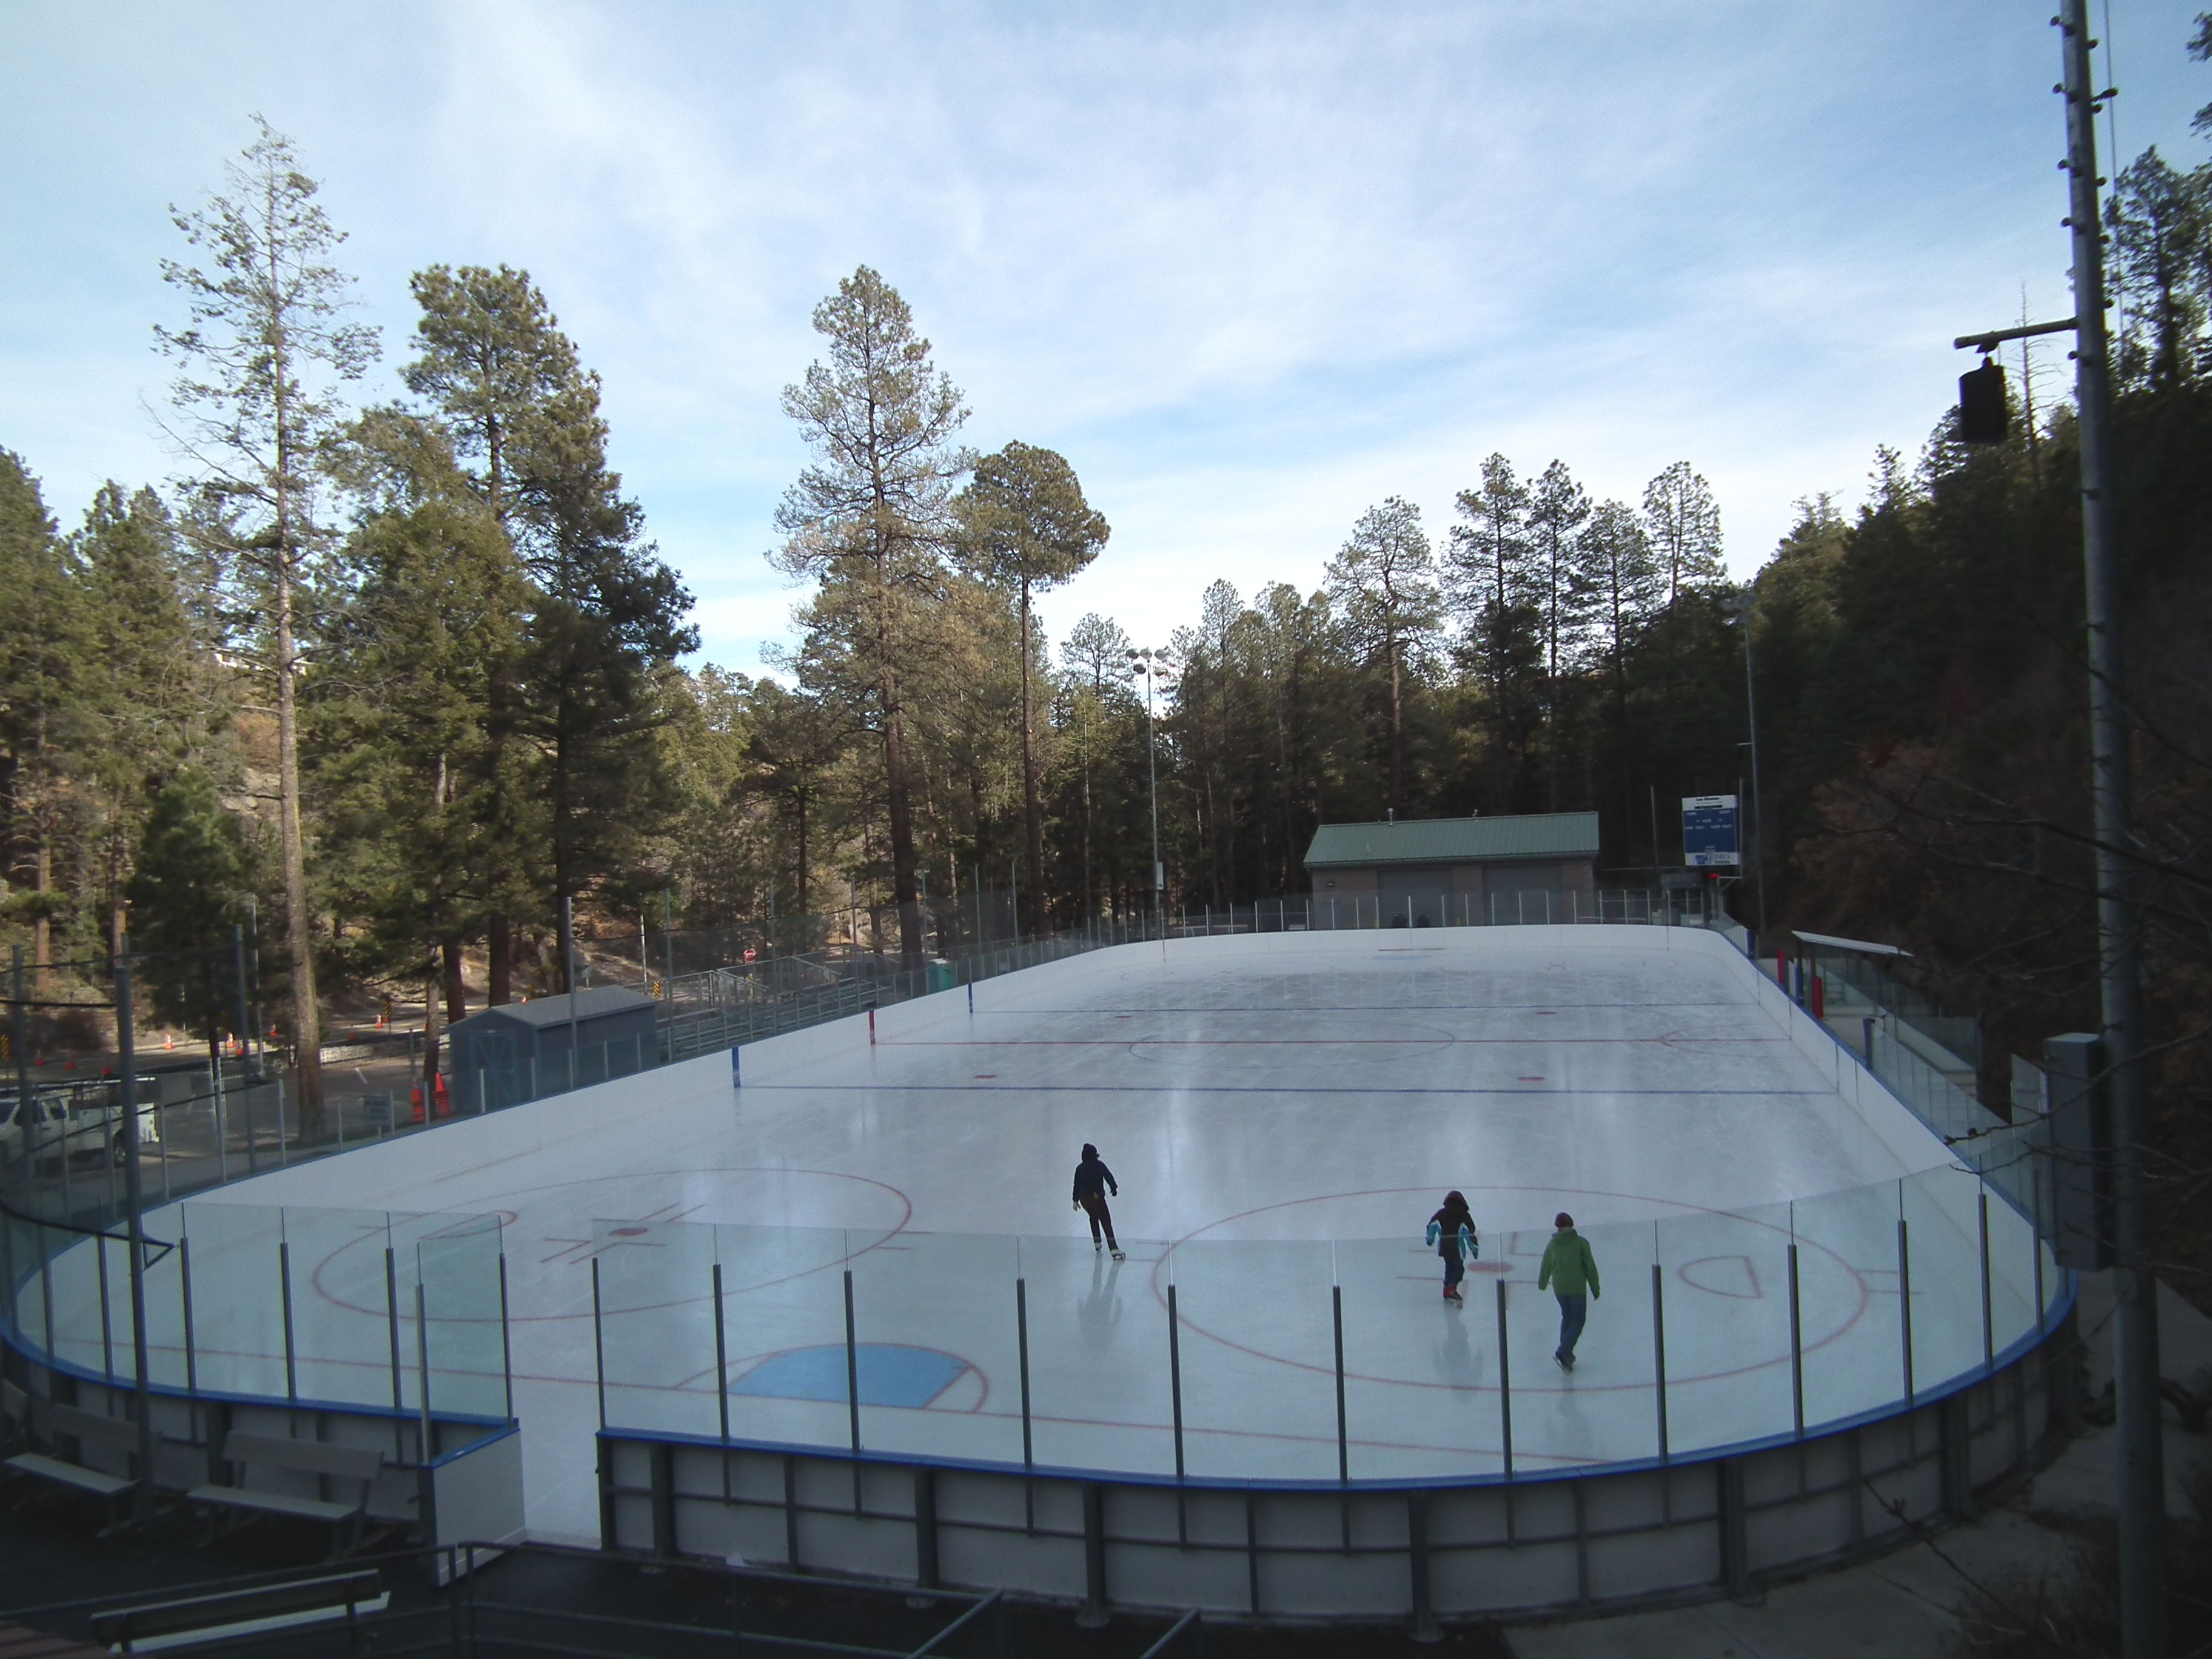 New mexico los alamos county los alamos - The Regulation Size Rink At Los Alamos County Hosts Hockey Leagues For All Ages